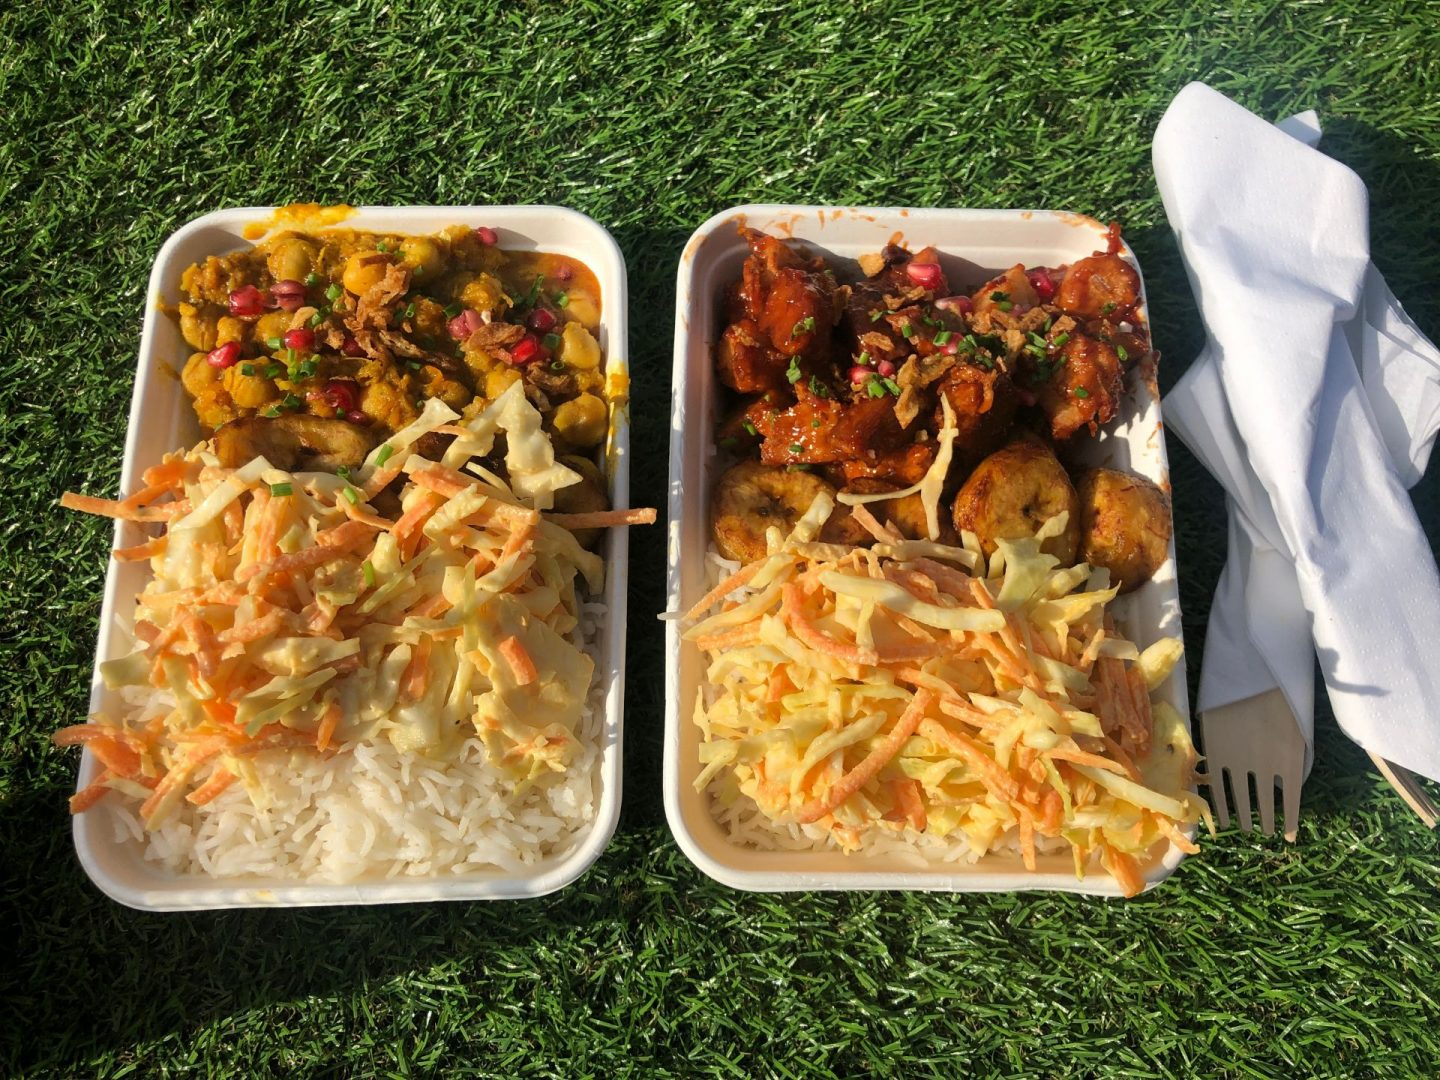 London jerk festival Vegan food